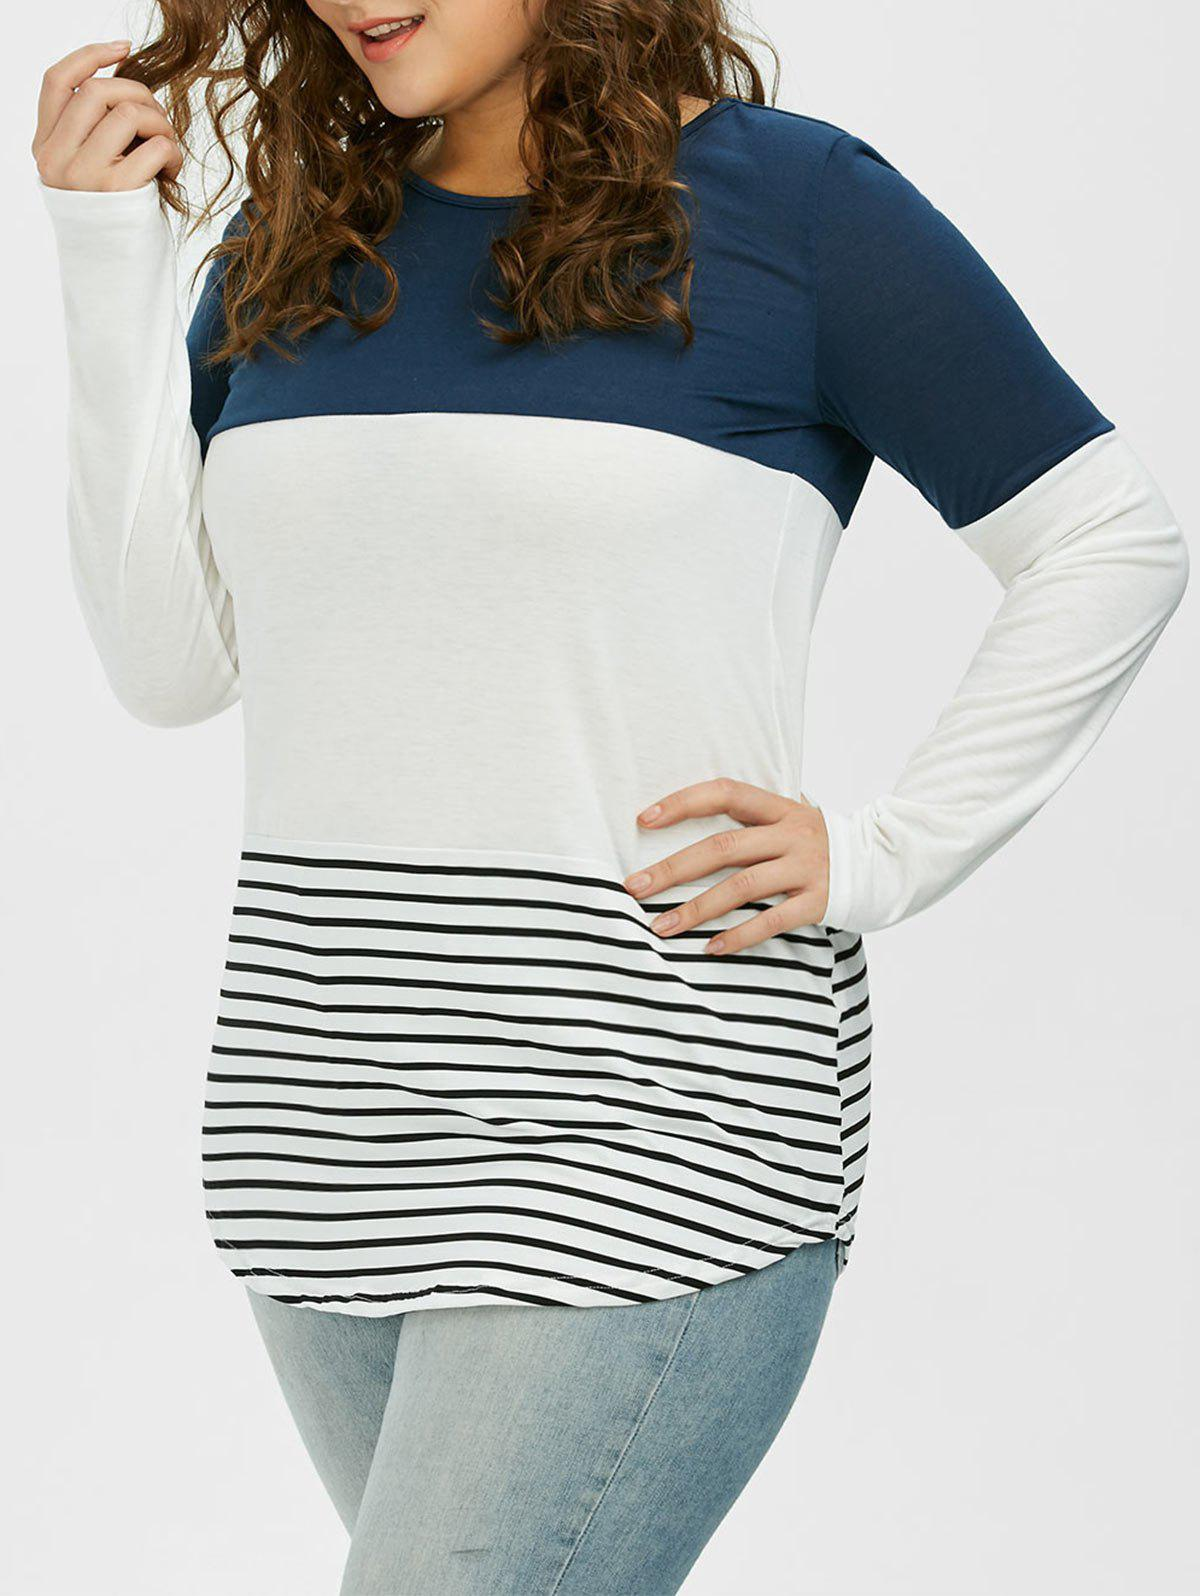 Color Block Stripe Plus Size TopWOMEN<br><br>Size: 2XL; Color: CADETBLUE; Material: Polyester; Shirt Length: Long; Sleeve Length: Short; Collar: Round Neck; Style: Casual; Season: Summer; Pattern Type: Striped; Weight: 0.3500kg; Package Contents: 1 x Top;